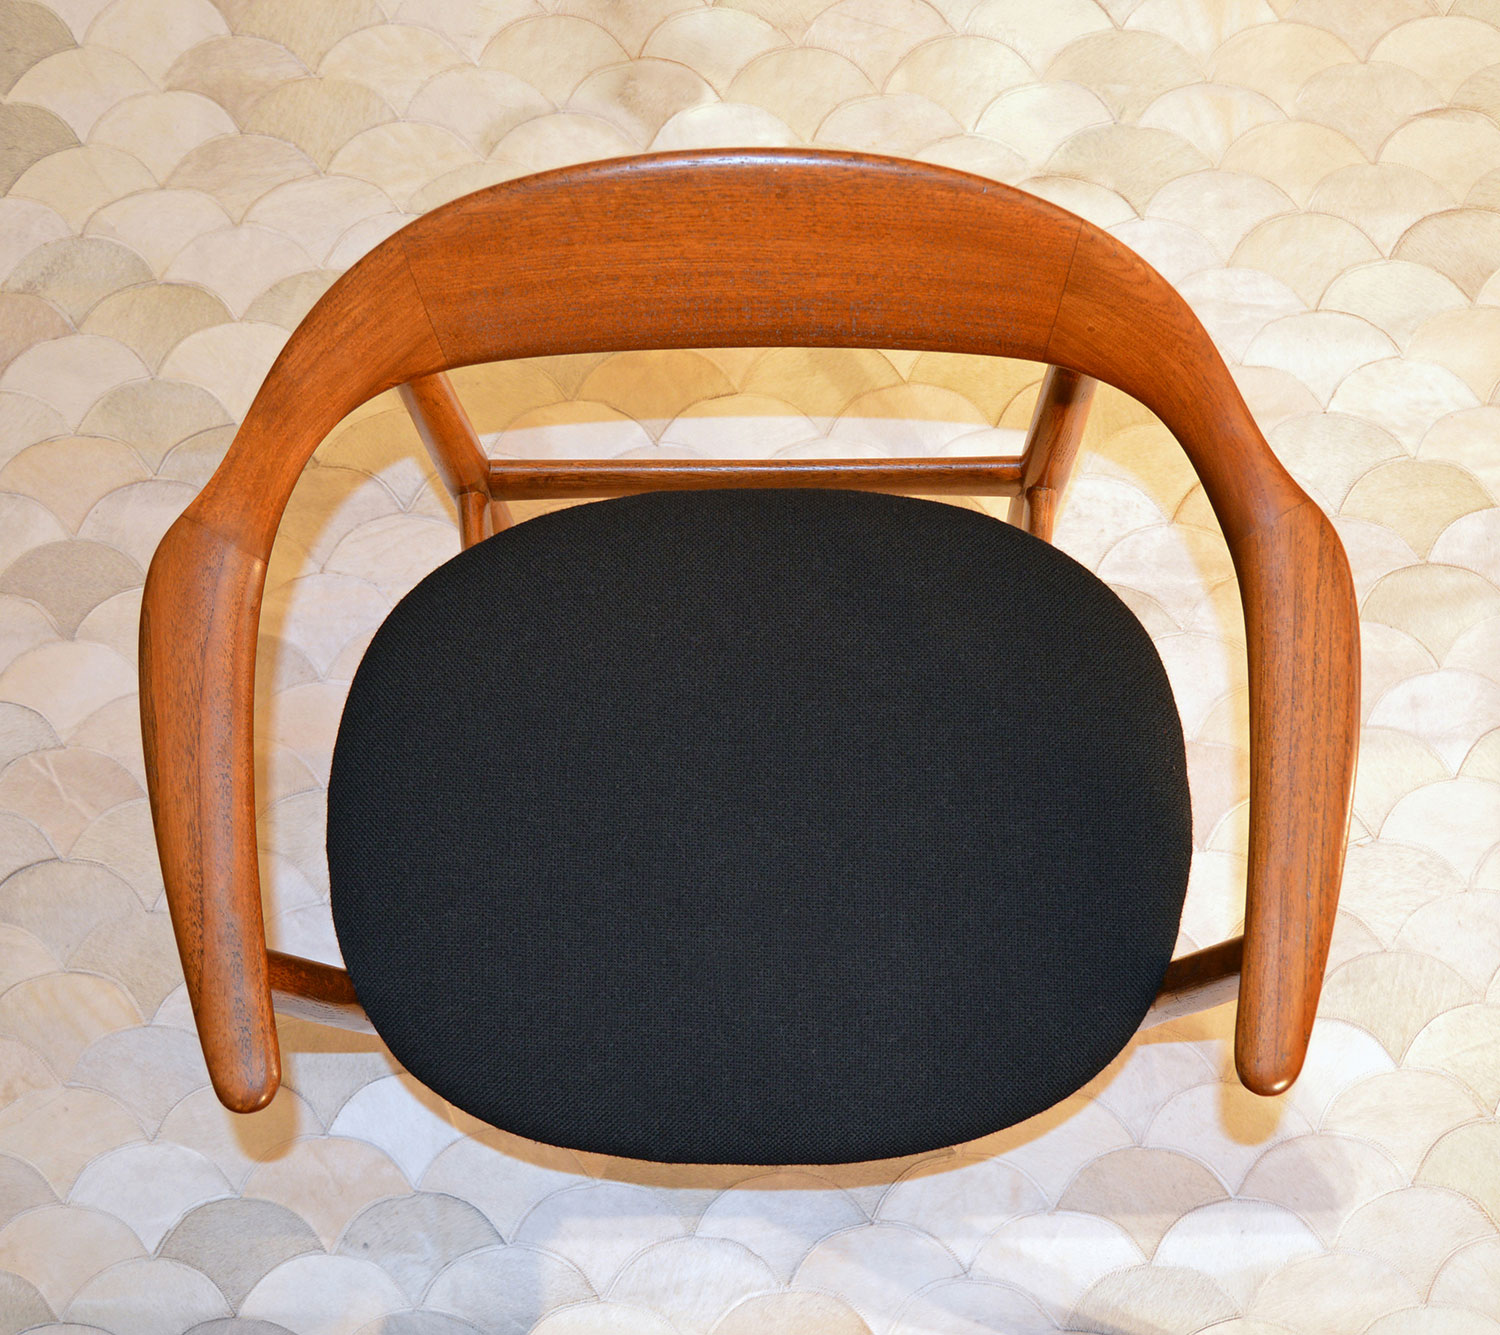 Danish mid century chair restoration San Francisco Bay Area and Los Angeles